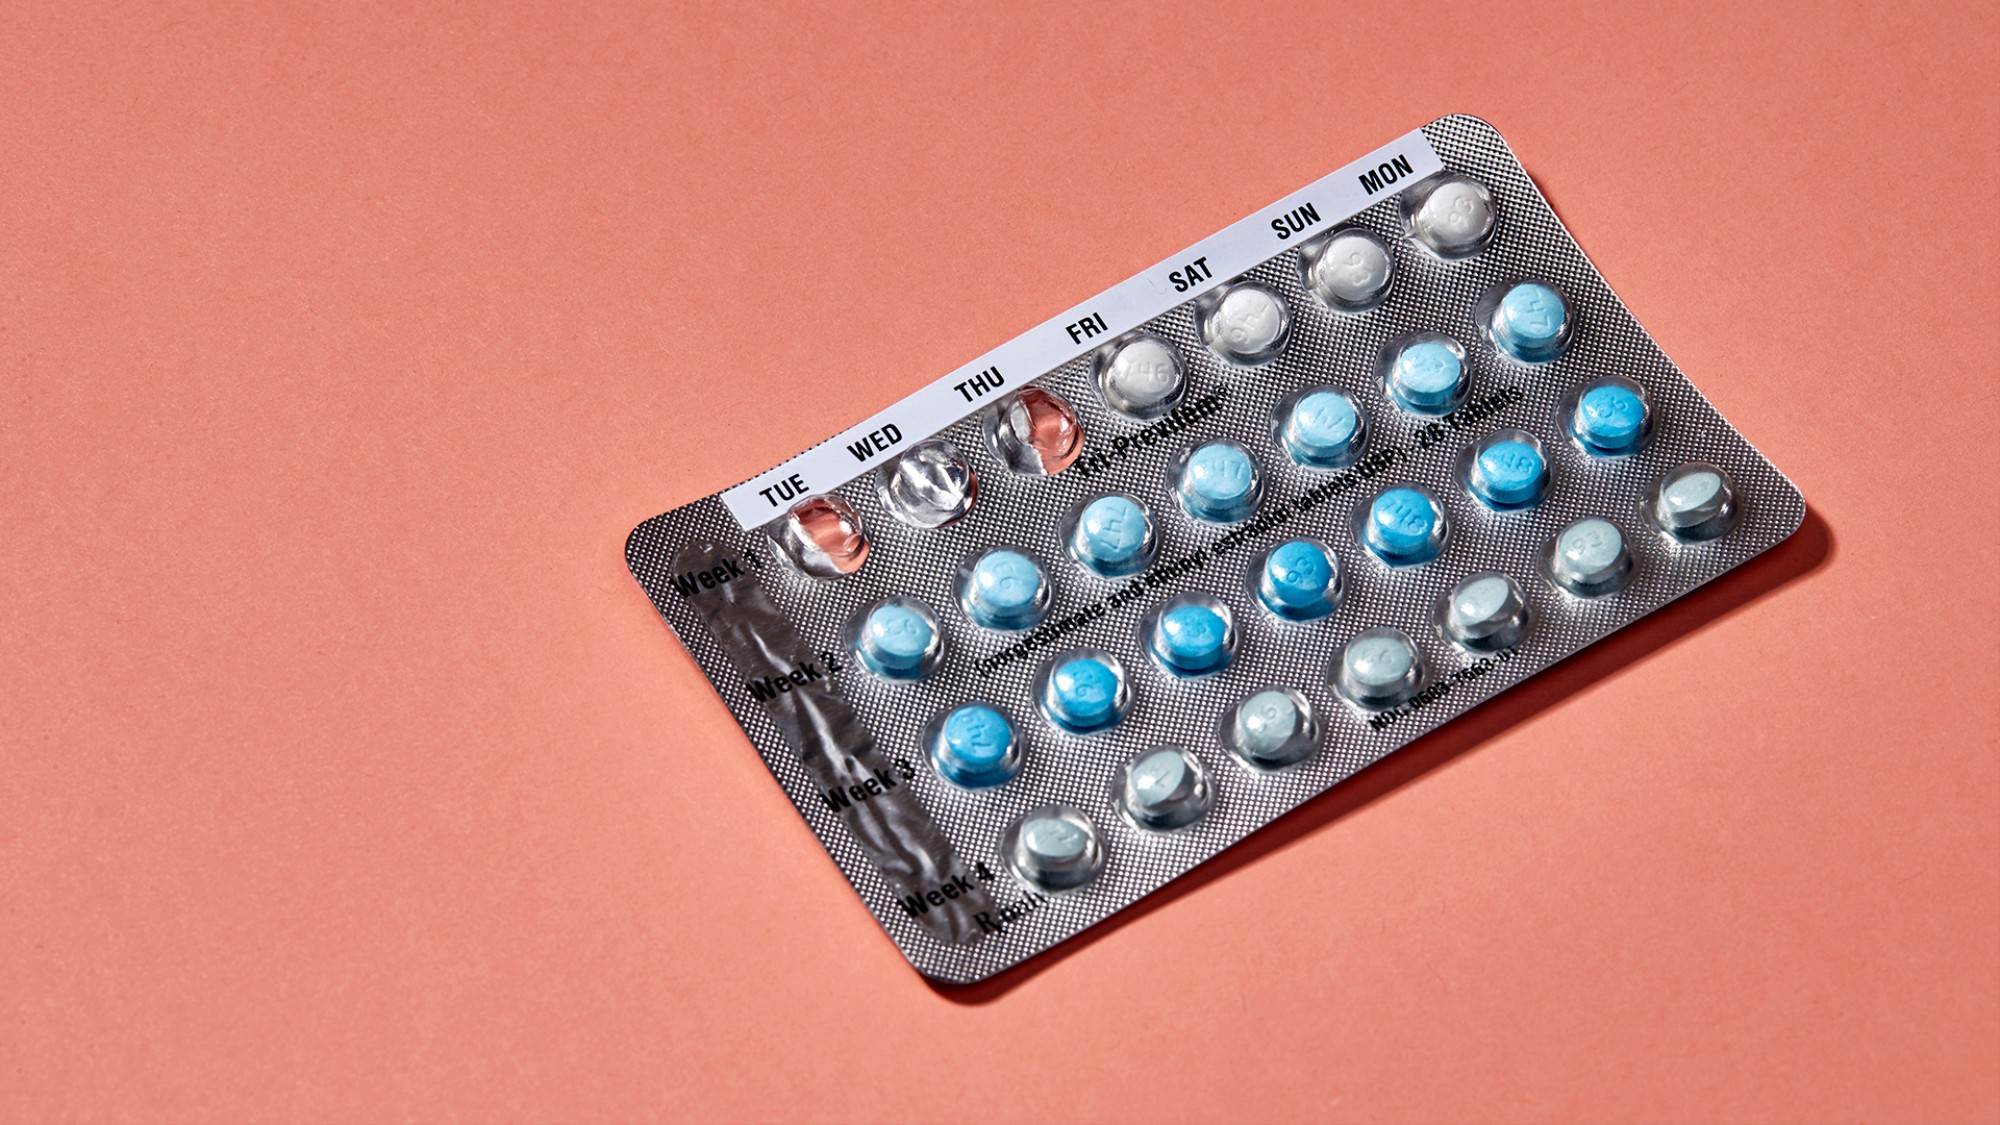 Antibiotics Don't Make Birth Control Less Effective - VICE